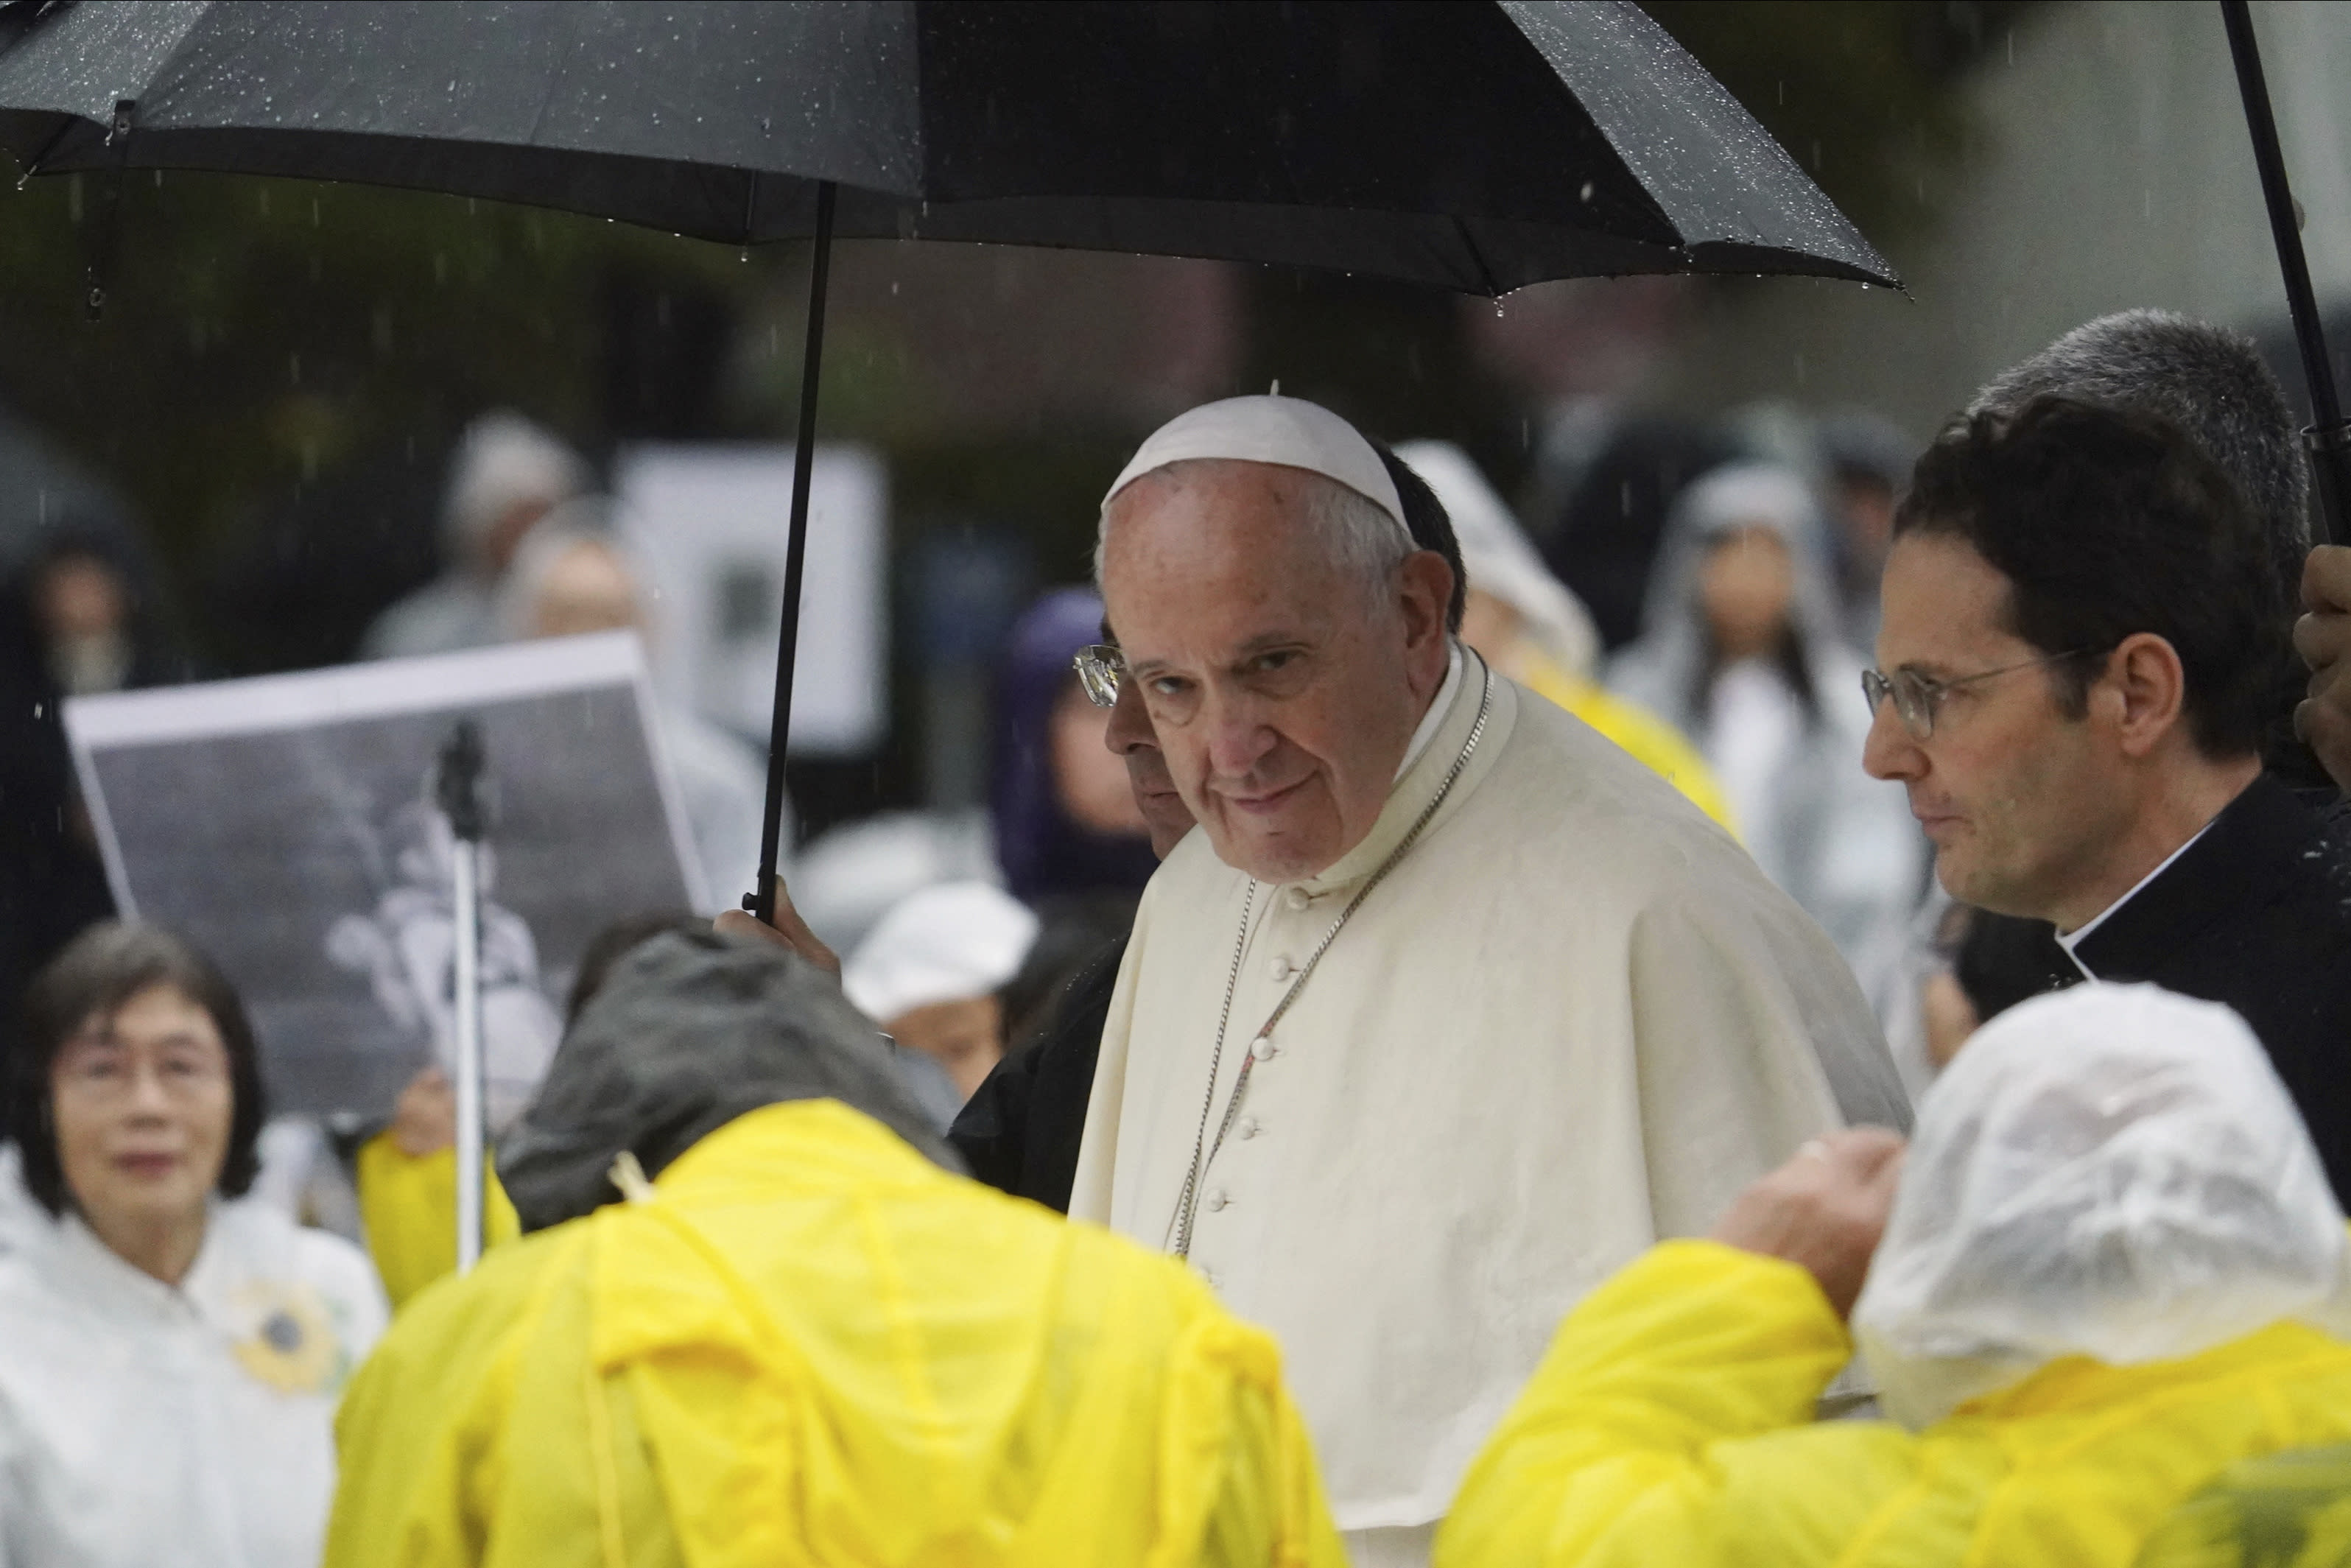 Pope Francis leaves the Atomic Bomb Hypocenter Park after delivering his speech, Sunday, Nov. 24, 2019, in Nagasaki, Japan. (AP Photo/Eugene Hoshiko)